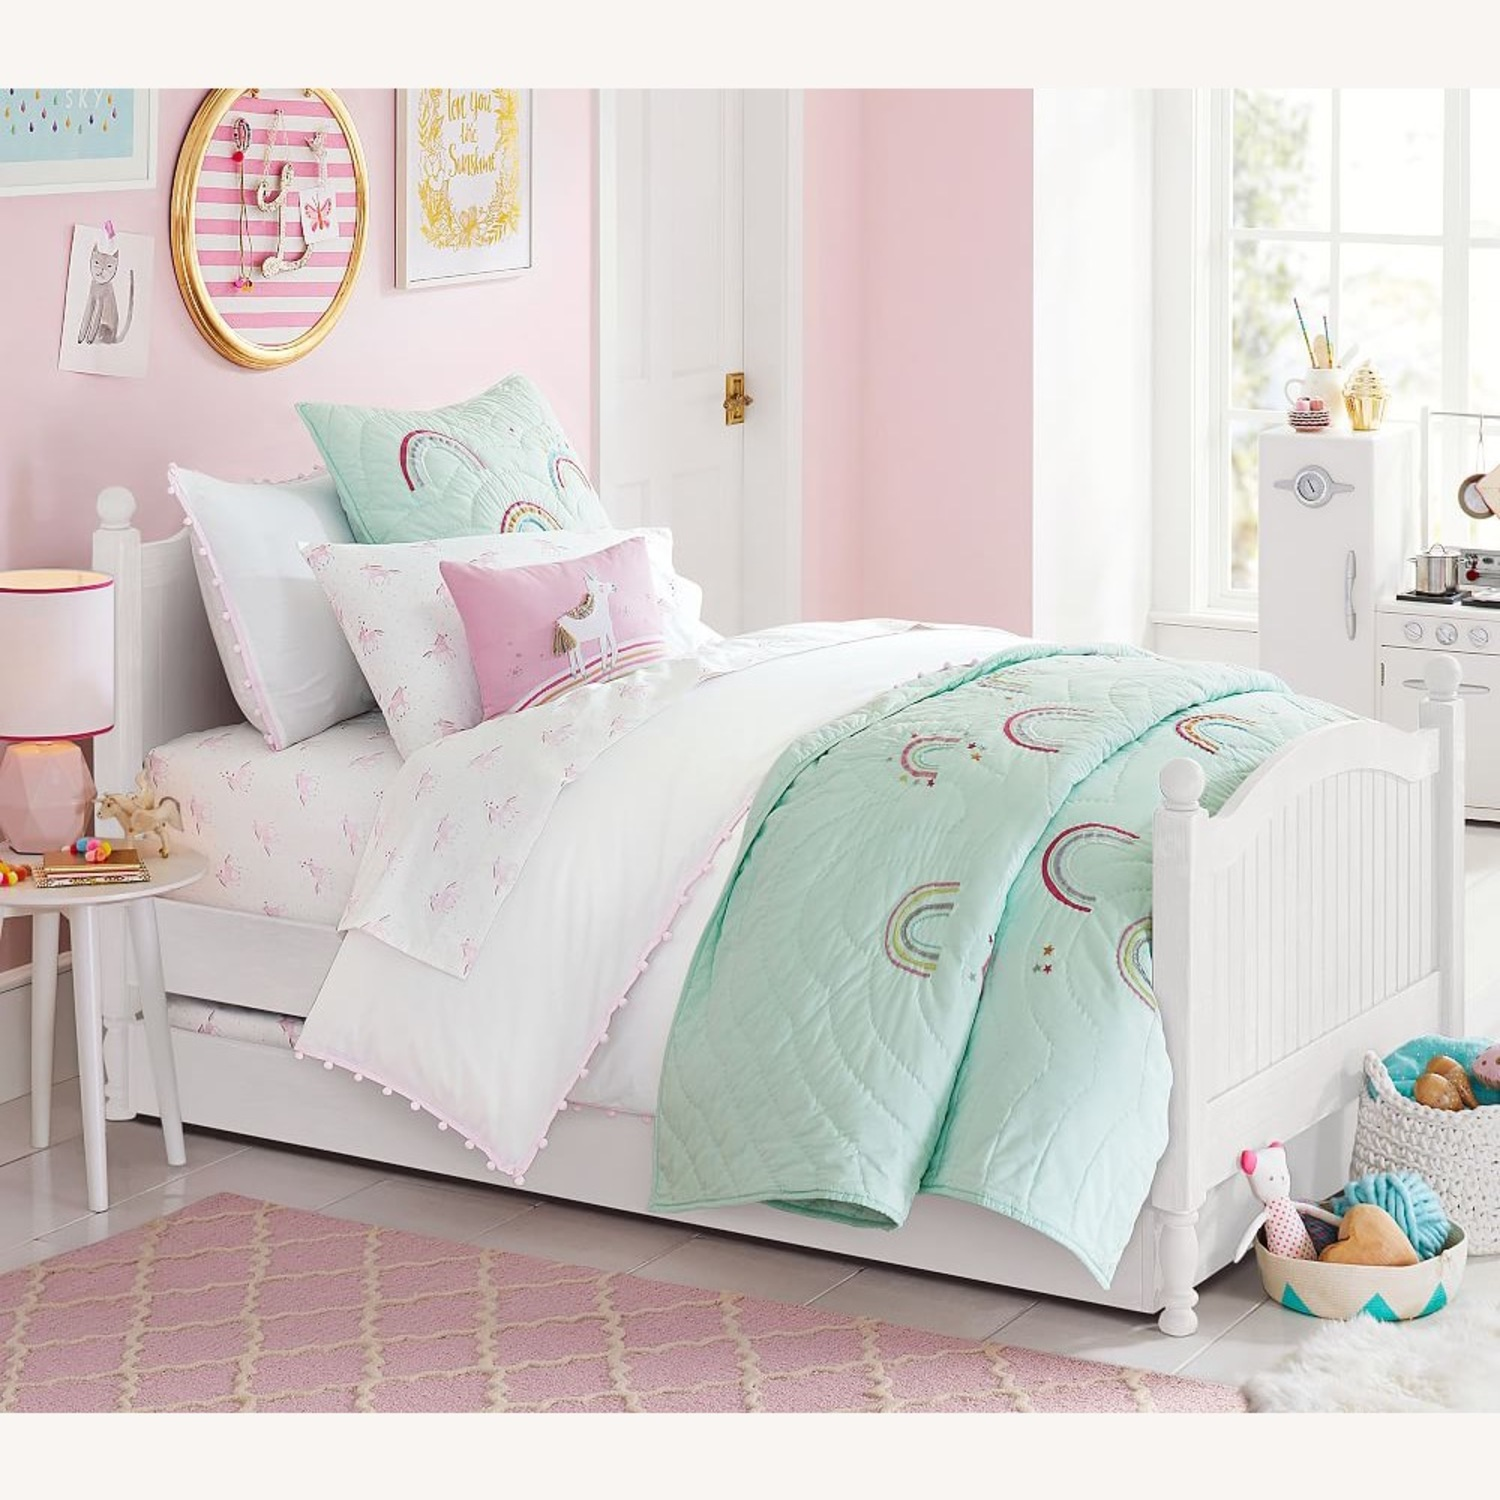 Pottery barn kids bed with trundle - image-3